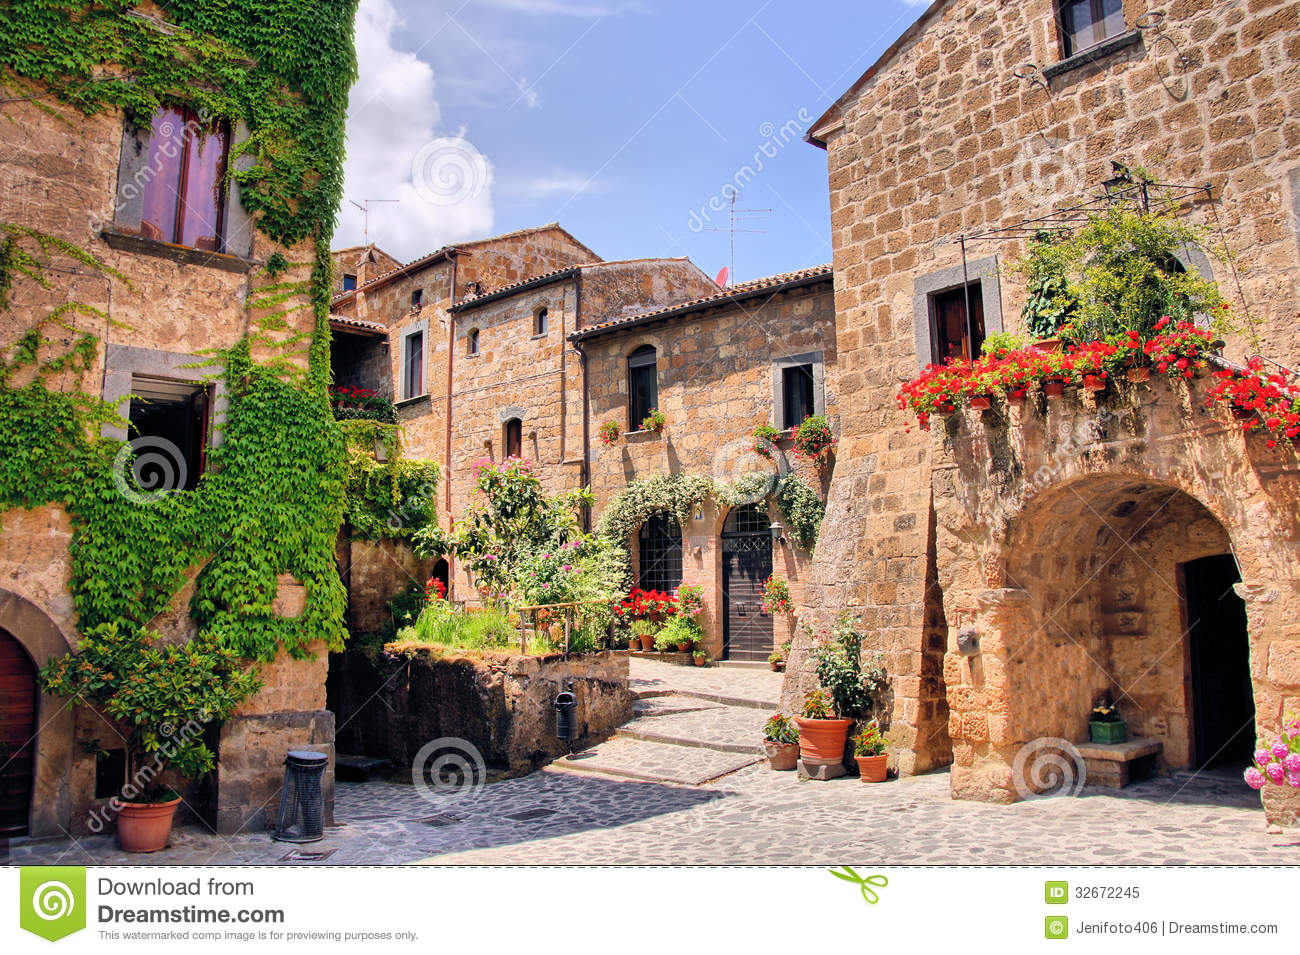 italian village stock image image of courtyard exterior